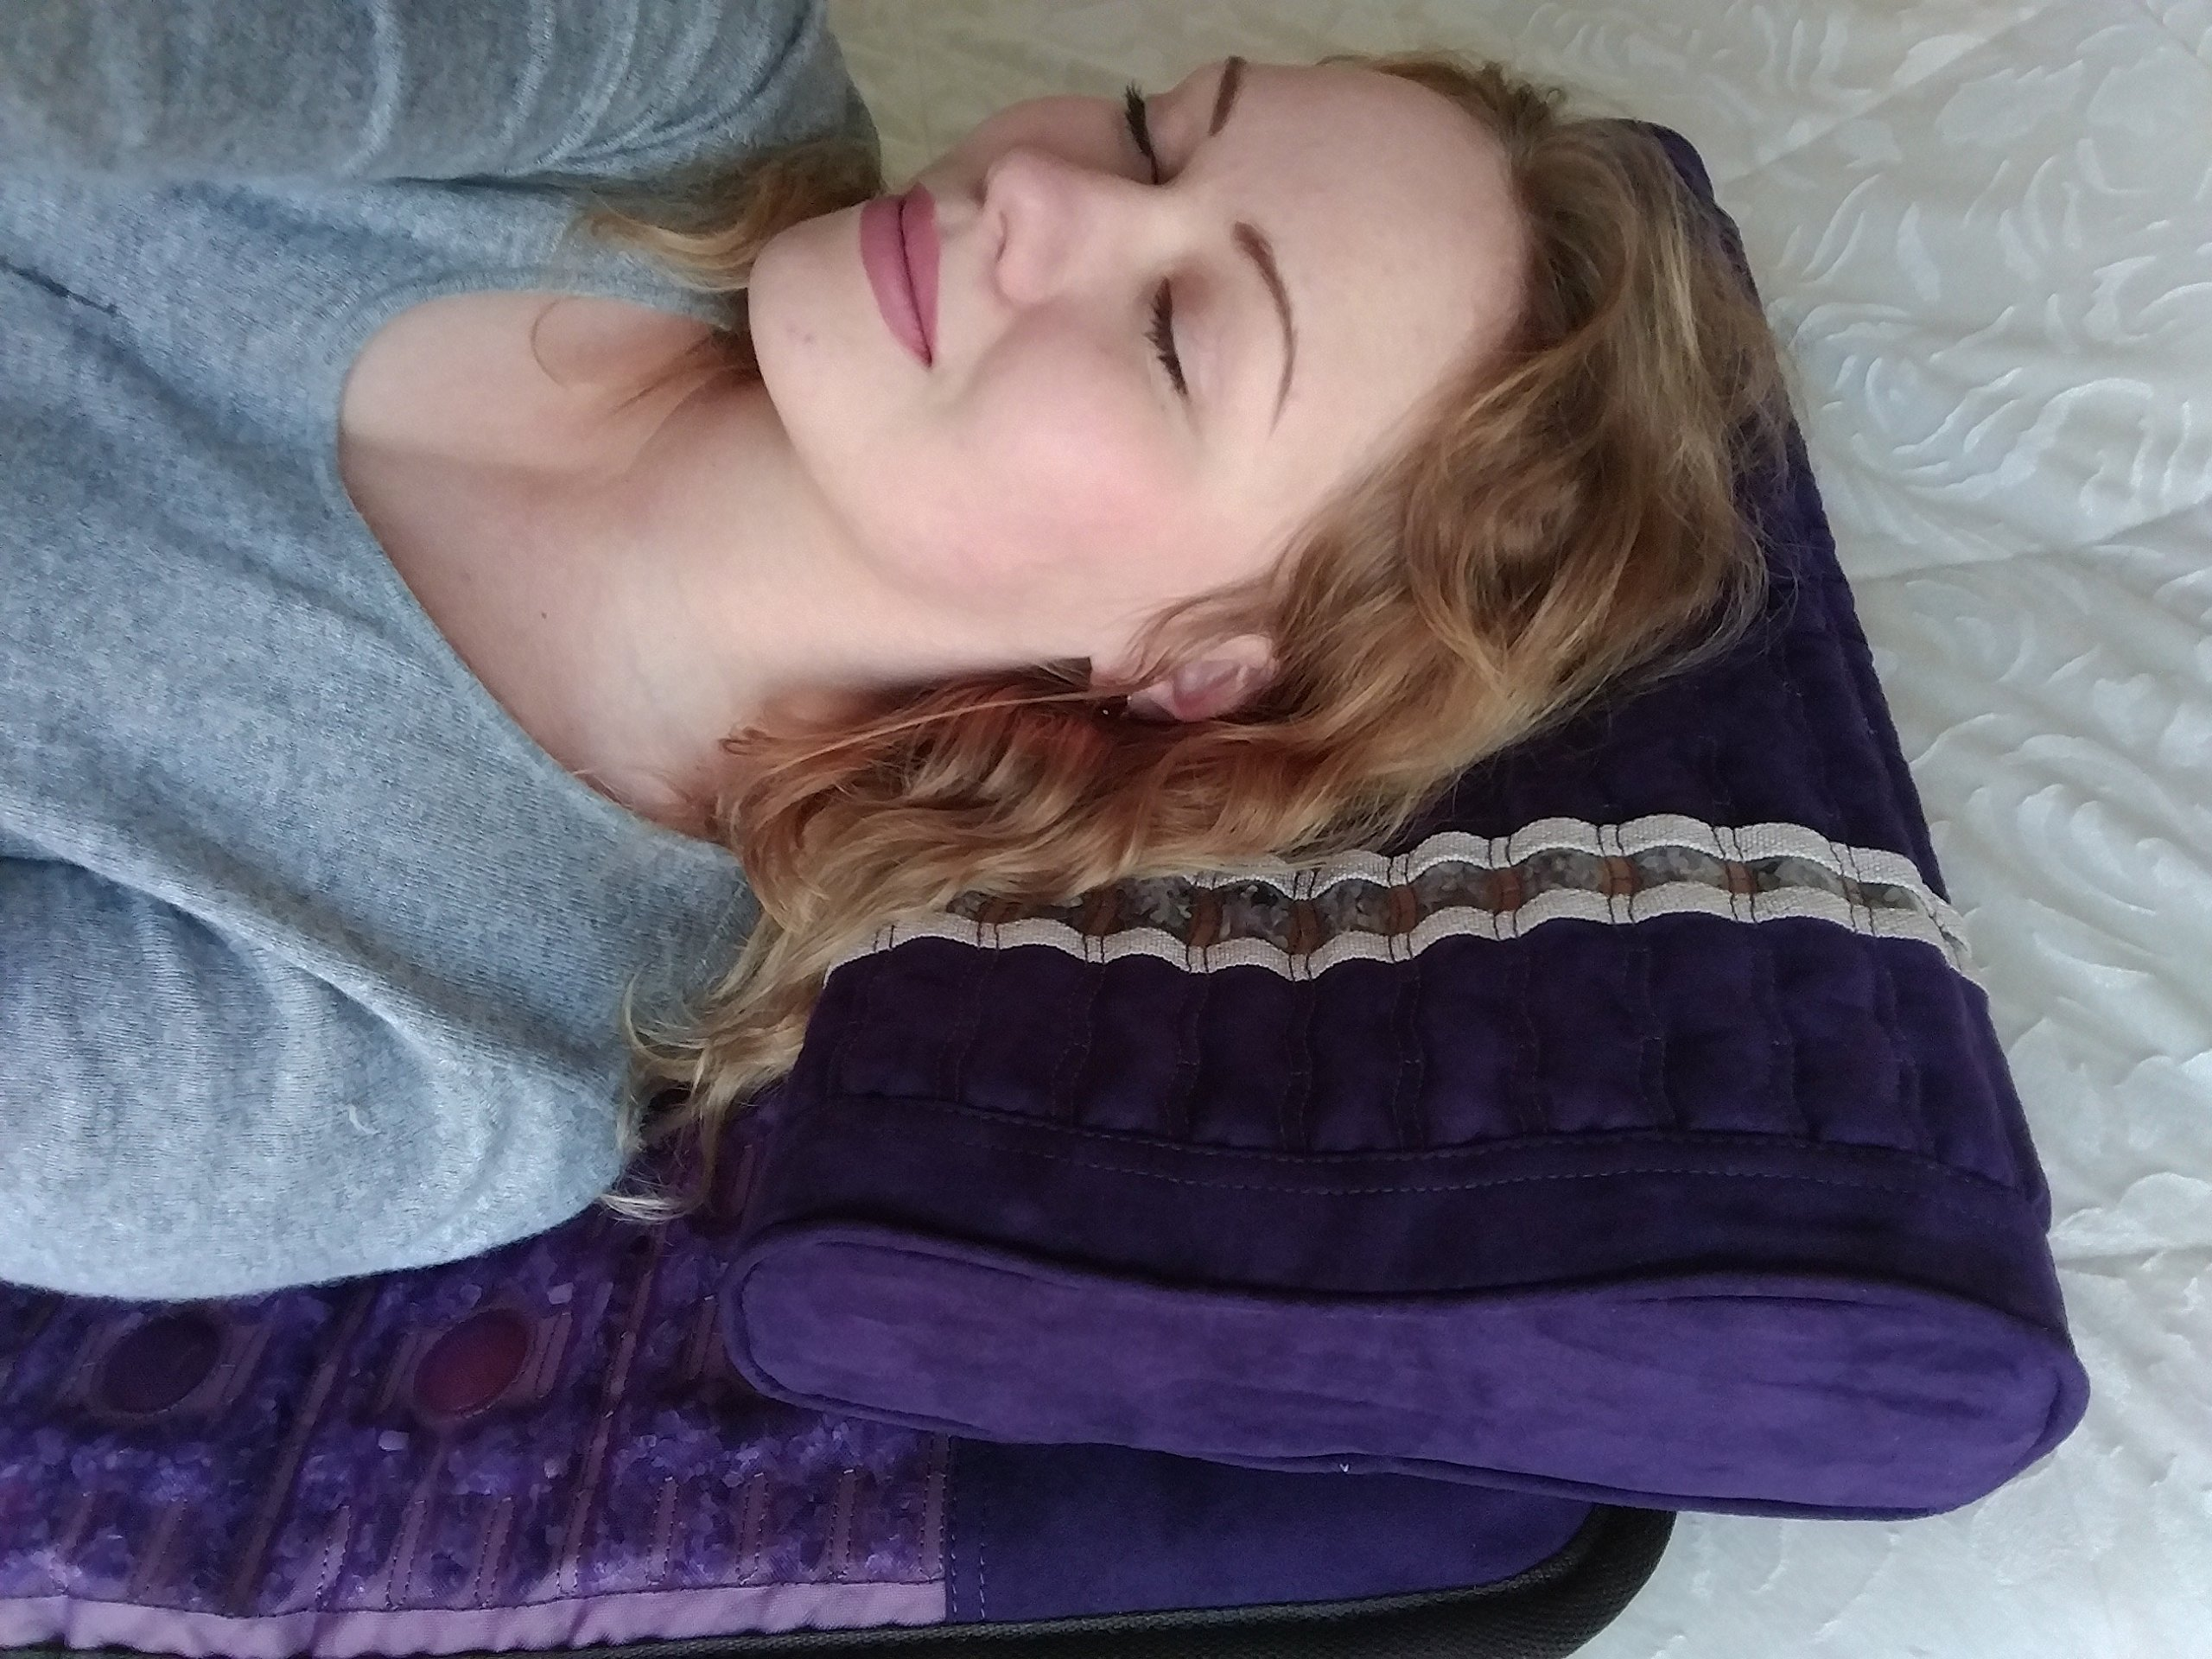 Far Infrared Amethyst Mat Pillow - Emits Negative Ions - Crystal FIR Rays - 100% Natural Amethyst Gemstones - Non Electric - For Headache and Stress Relief - To Sleep Better - GENTLE support - Purple by MediCrystal (Image #7)